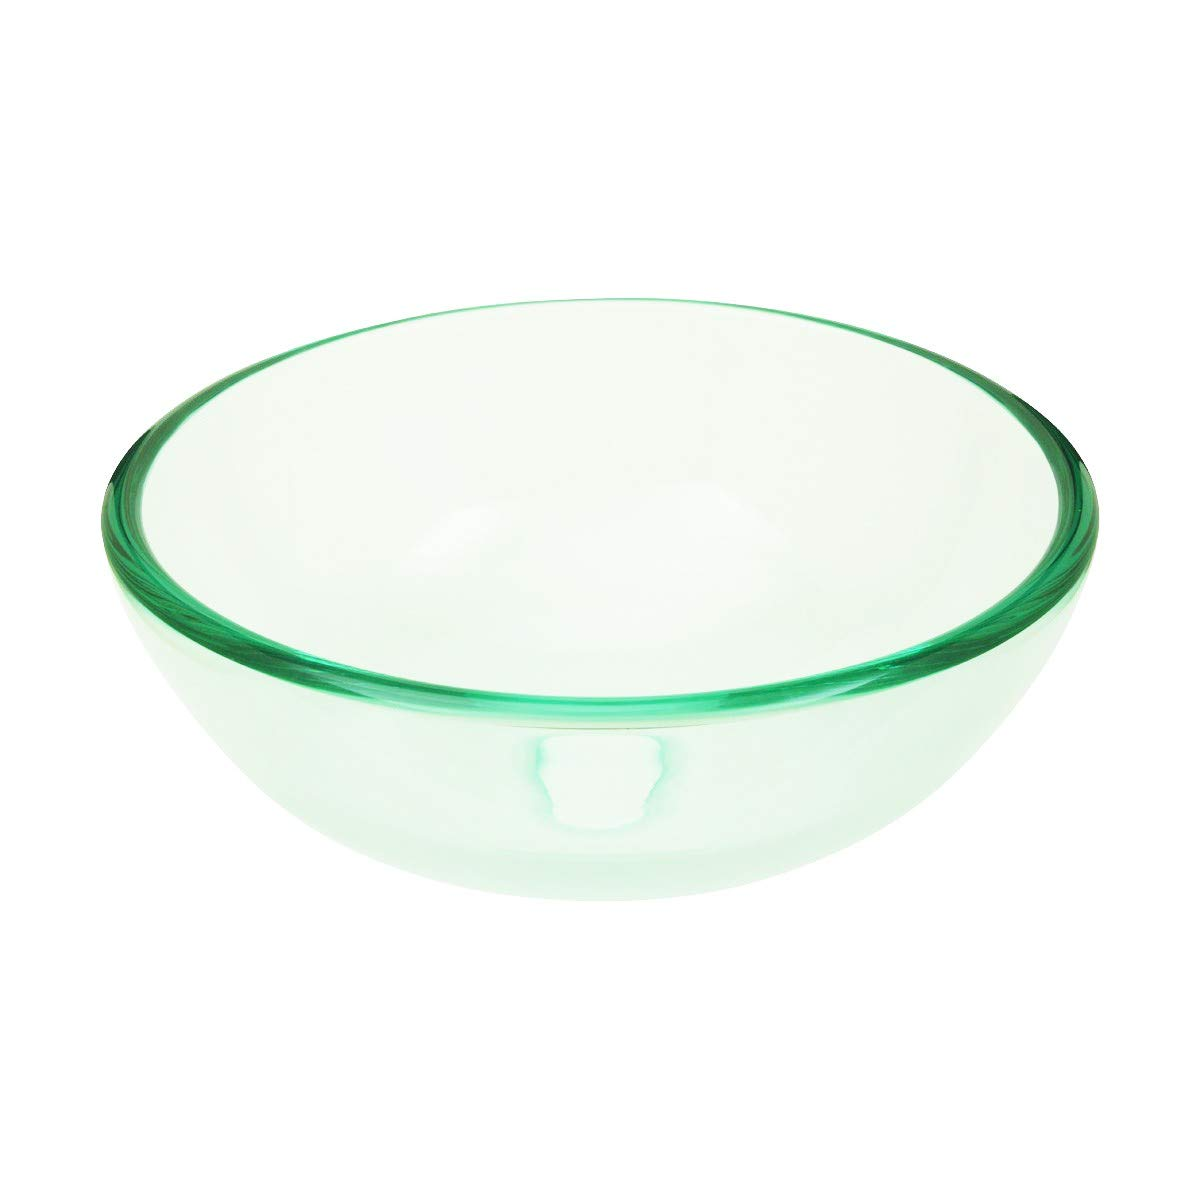 Tempered Glass Vessel Sink With Drain, Clear Mini Bowl Sink